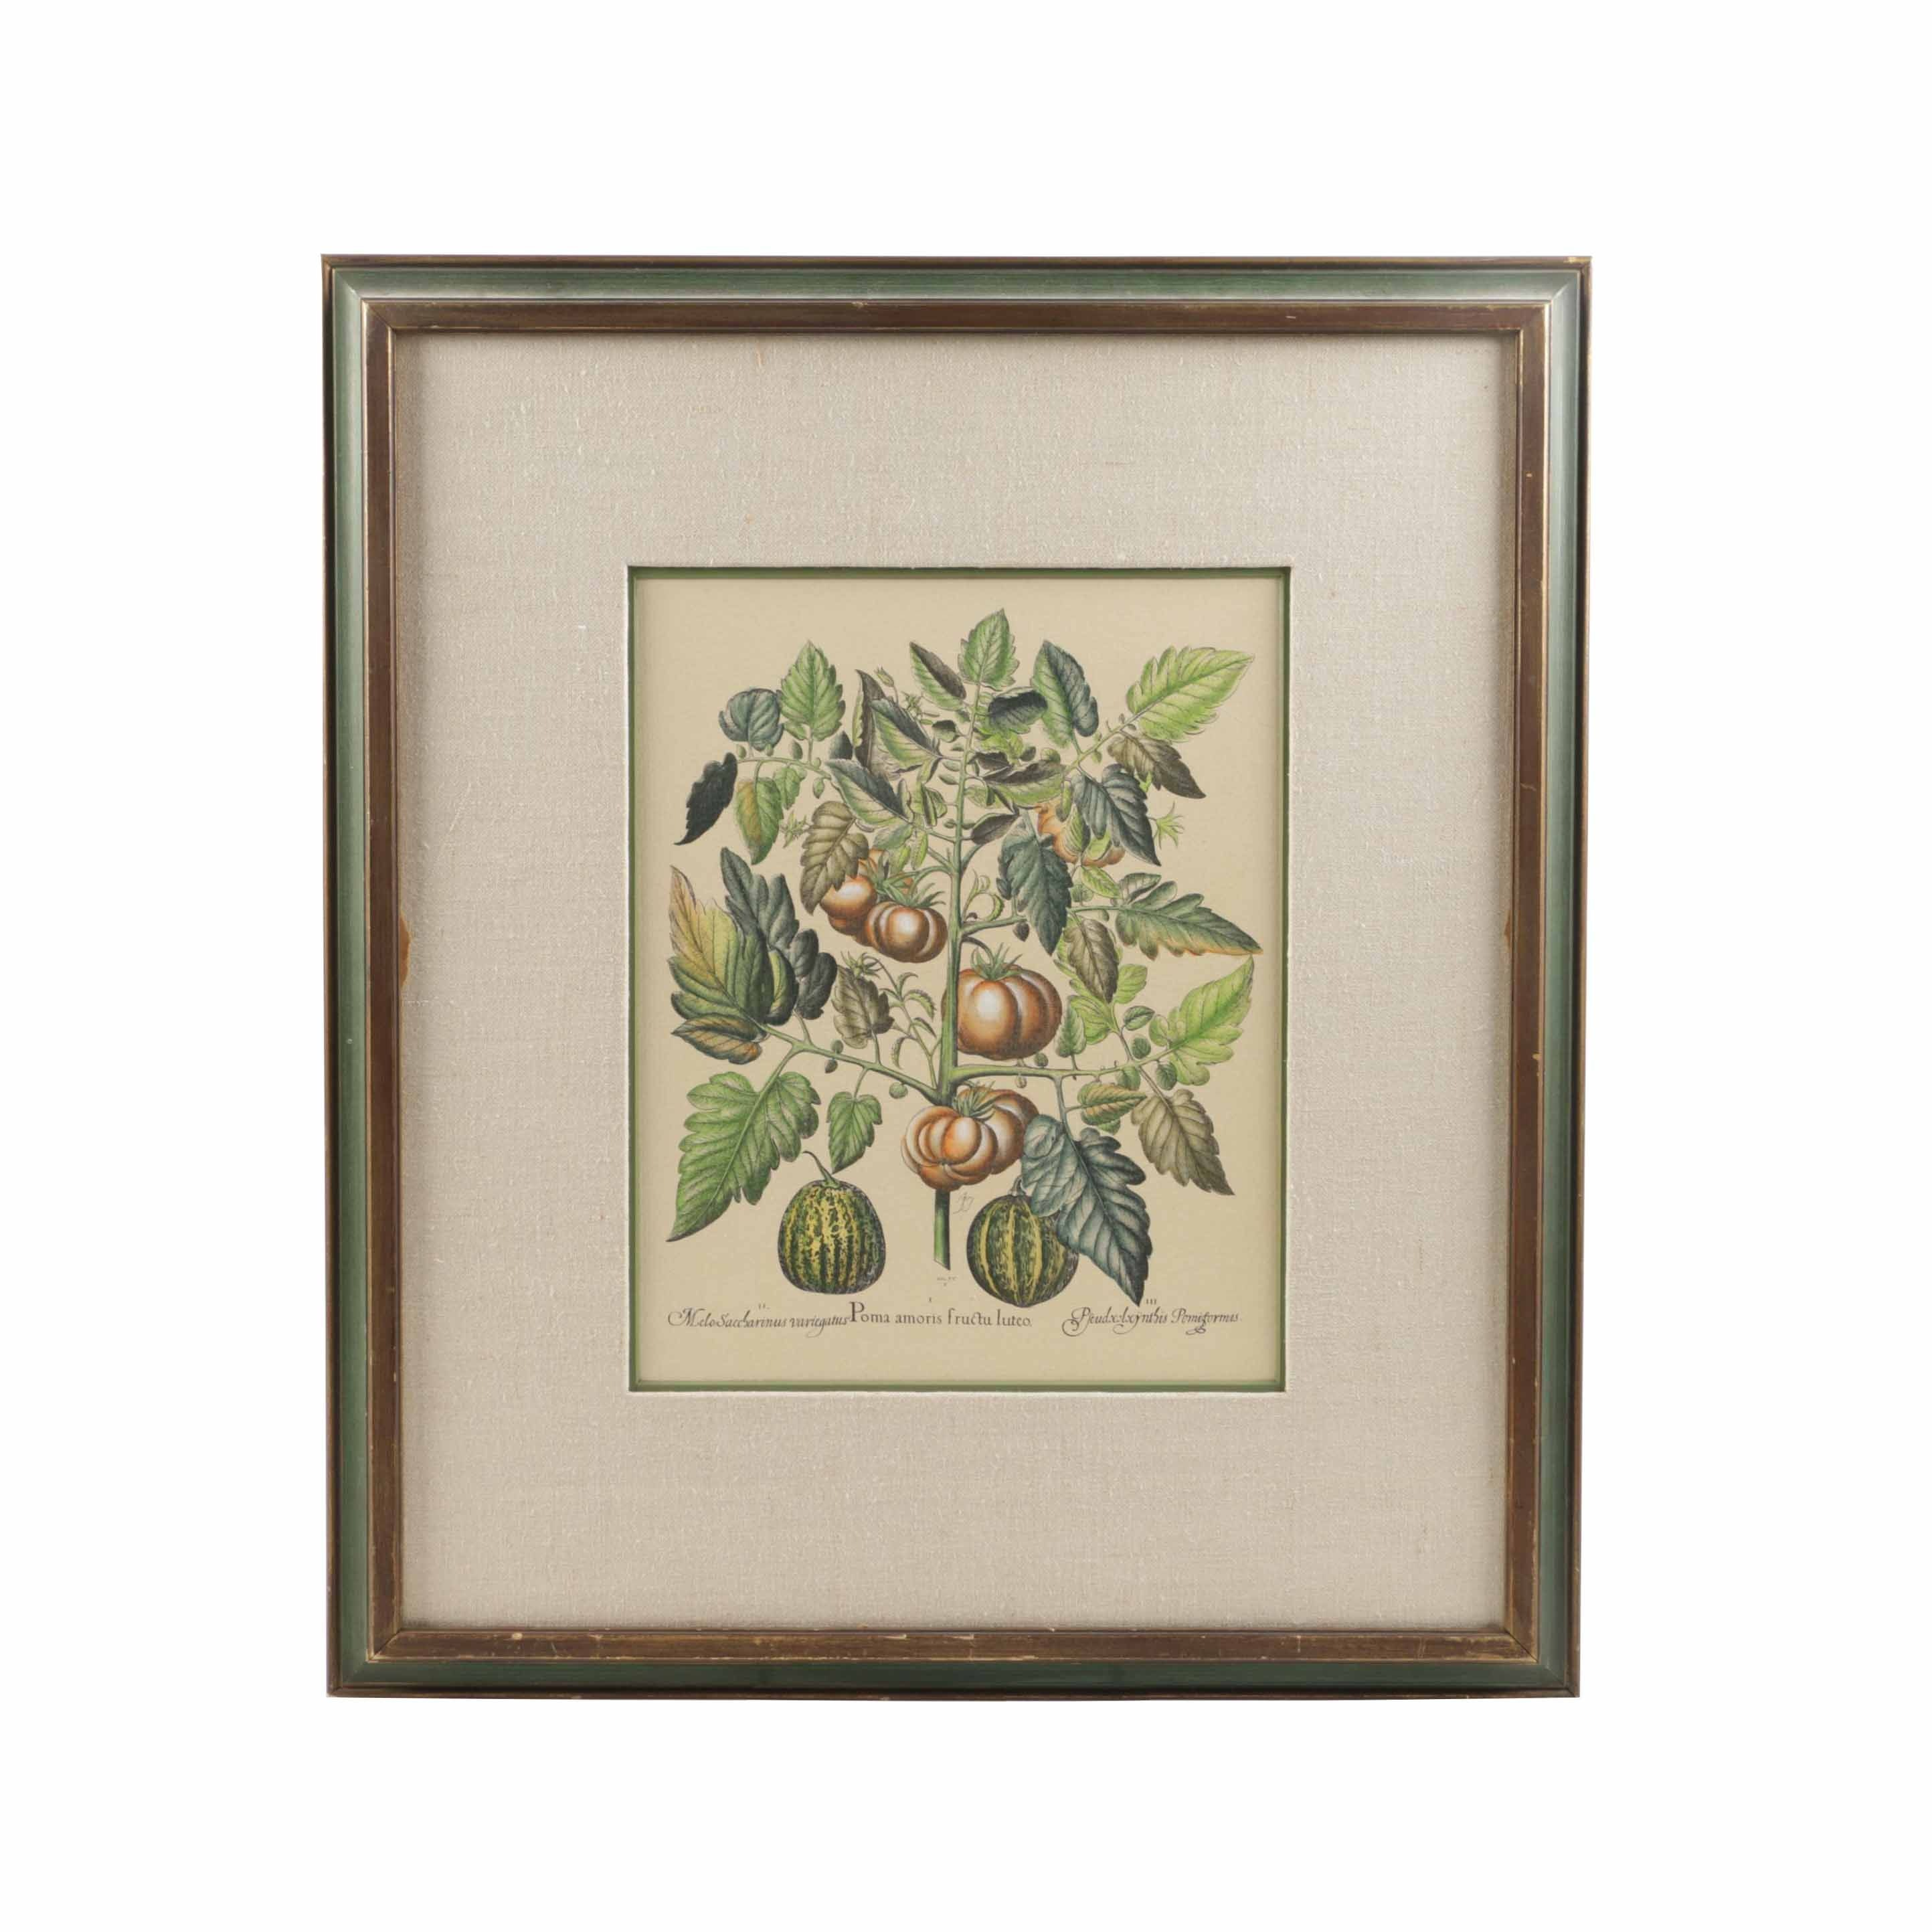 After Basilius Besler Hand-colored Restrike Engraving on Paper of Fruit and Flowers